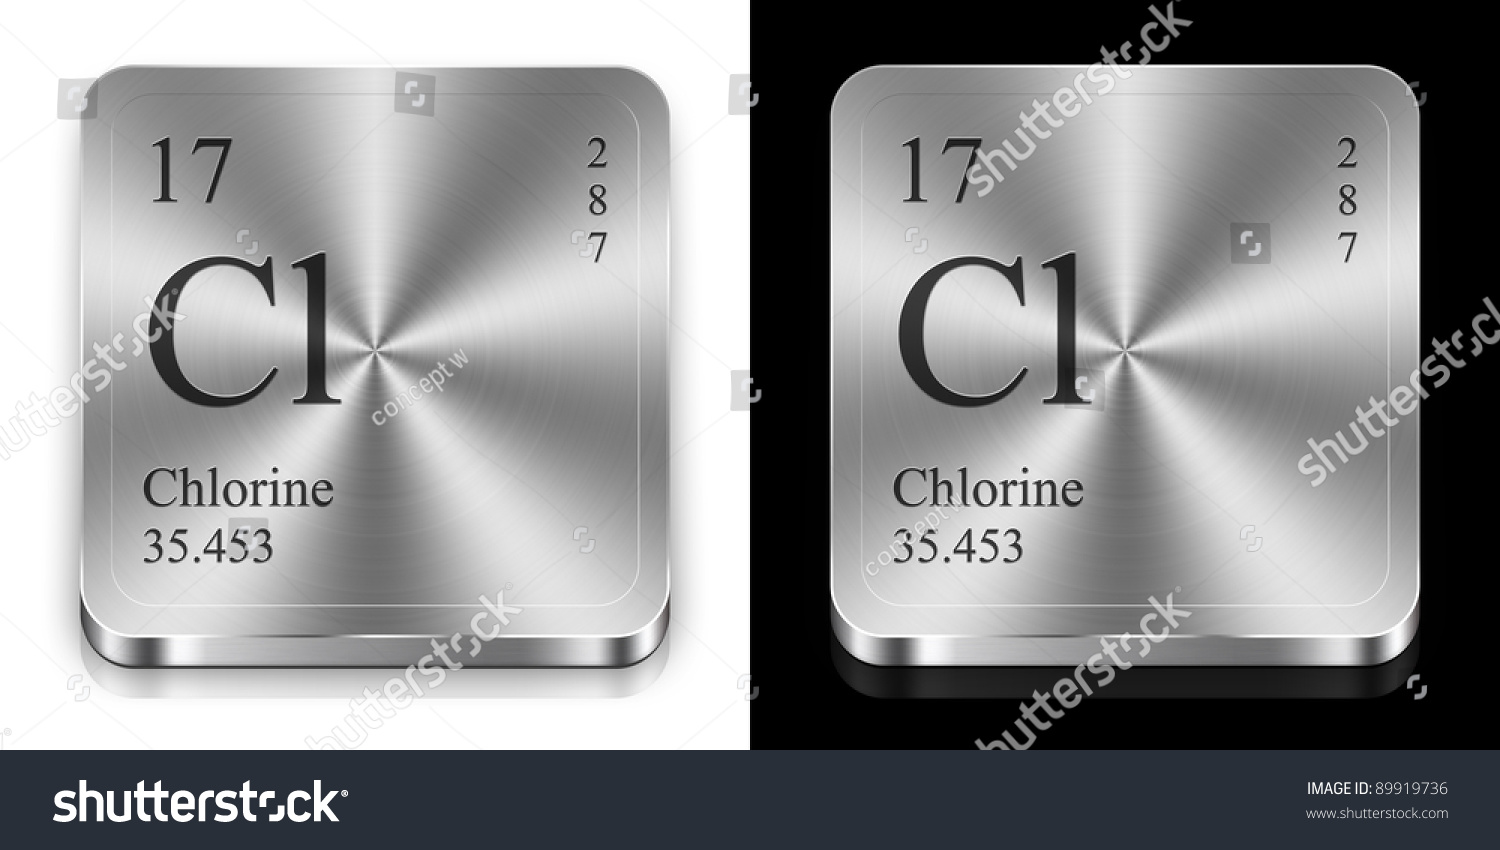 Chlorine element periodic table two metal stock illustration chlorine element of the periodic table two metal web buttons gamestrikefo Gallery